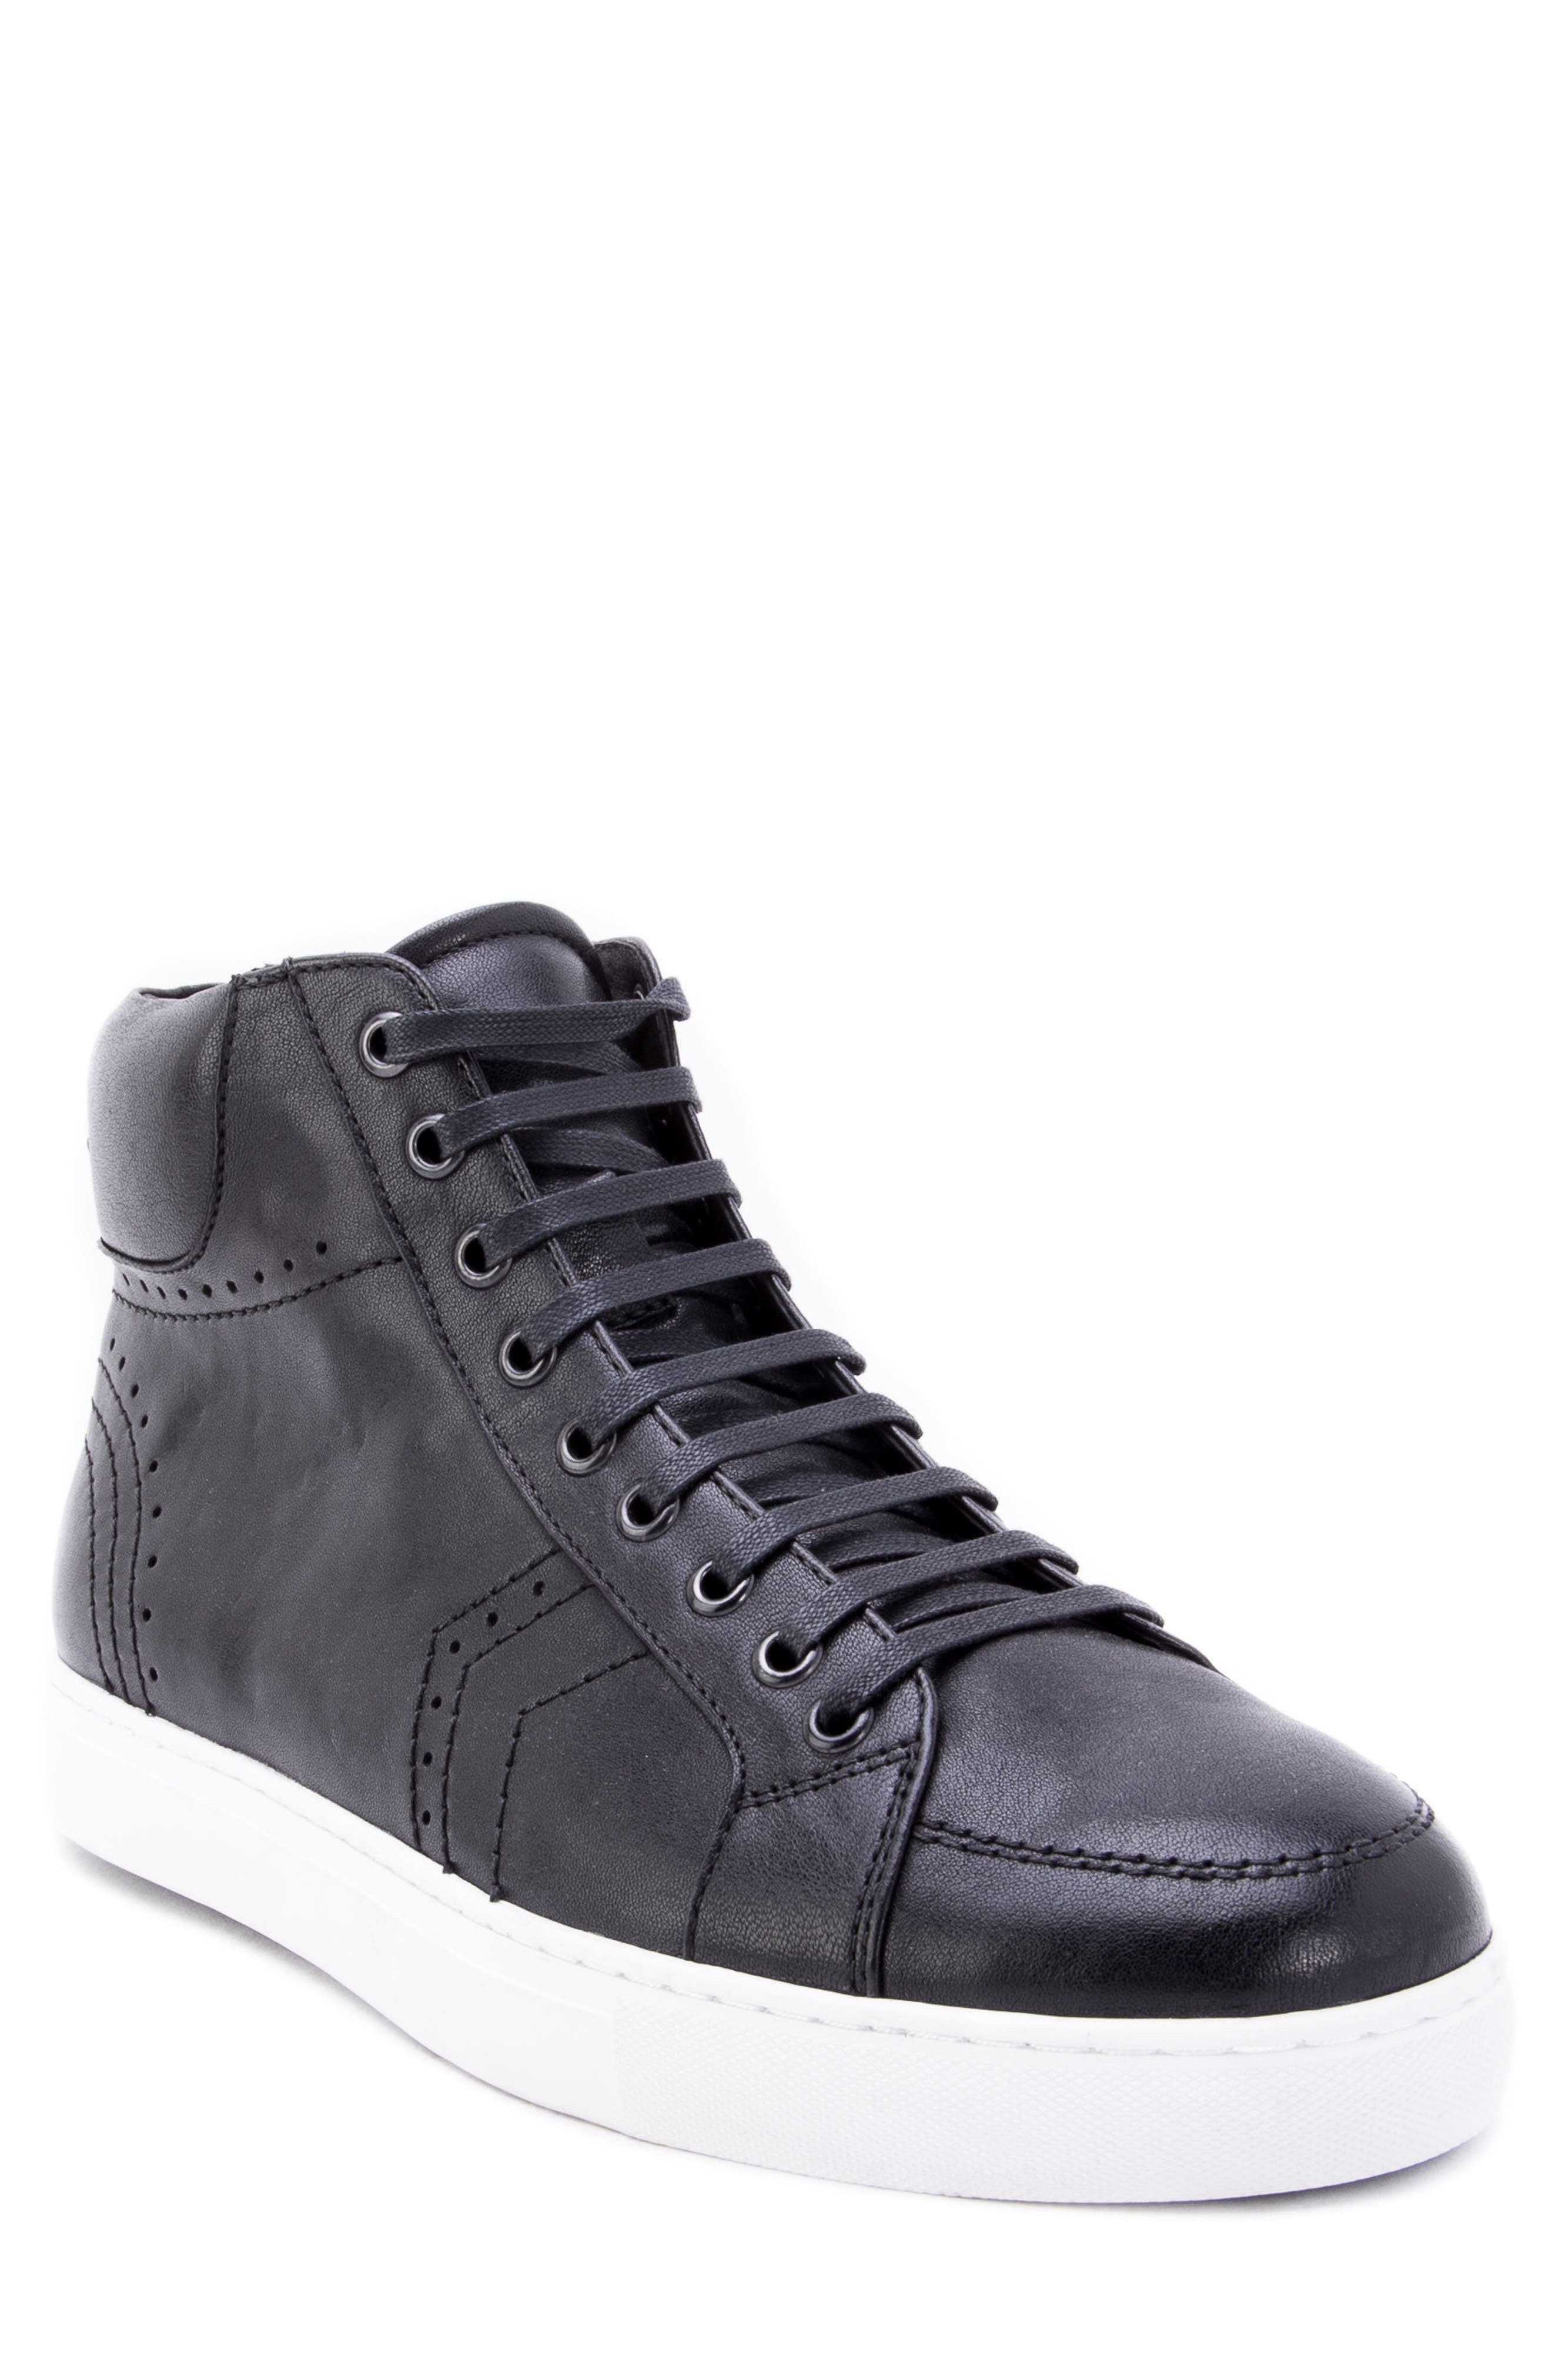 Uglow Perforated High Top Sneaker,                             Main thumbnail 1, color,                             BLACK LEATHER